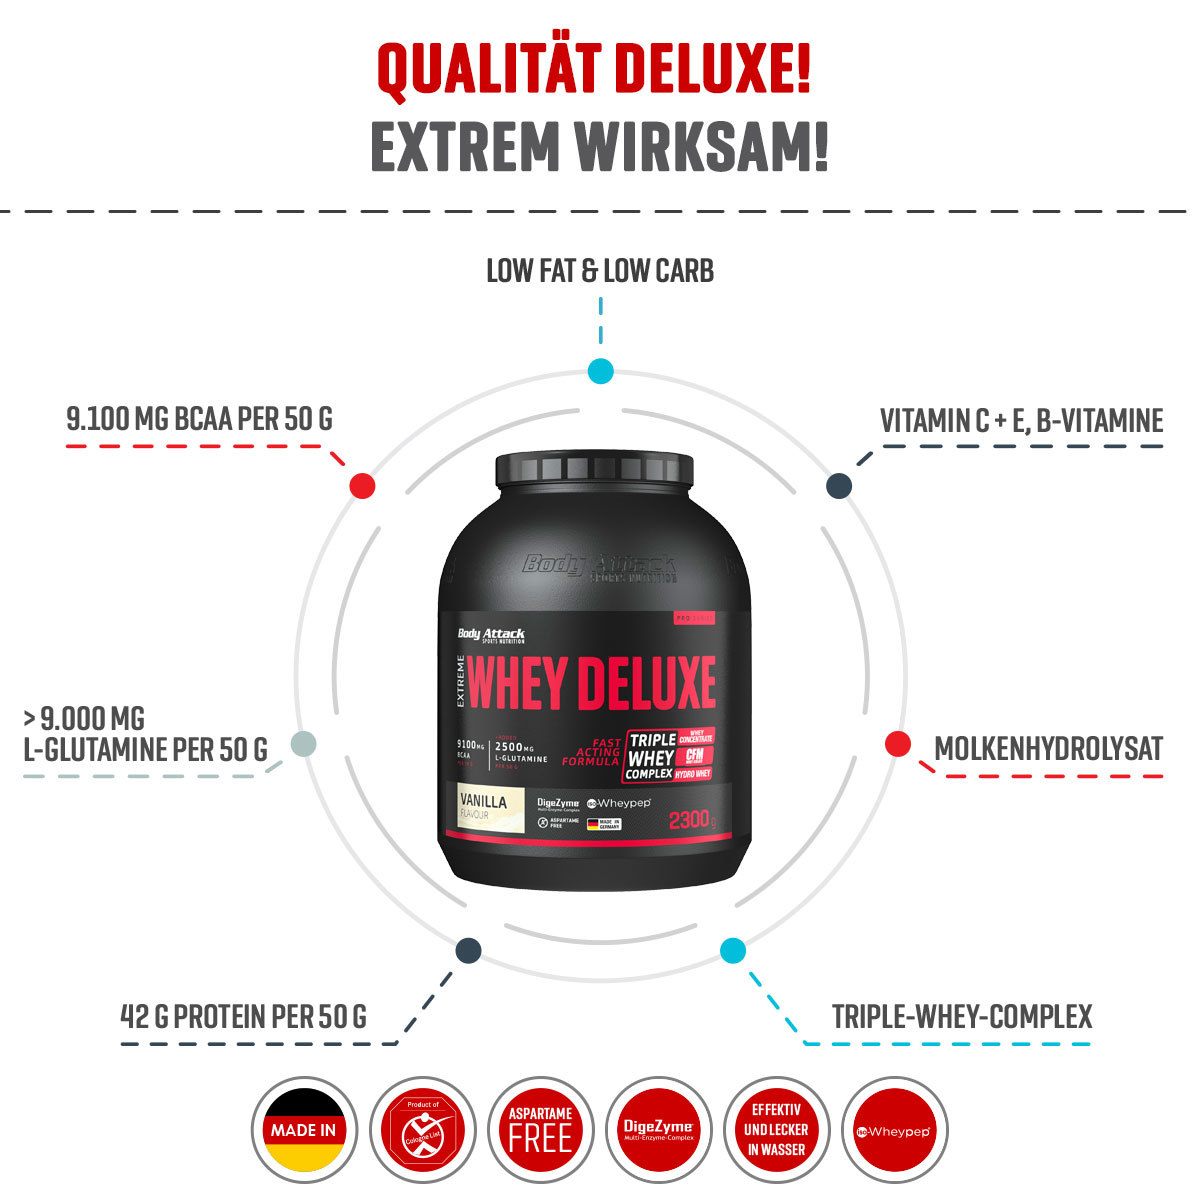 Extreme Whey Deluxe Info